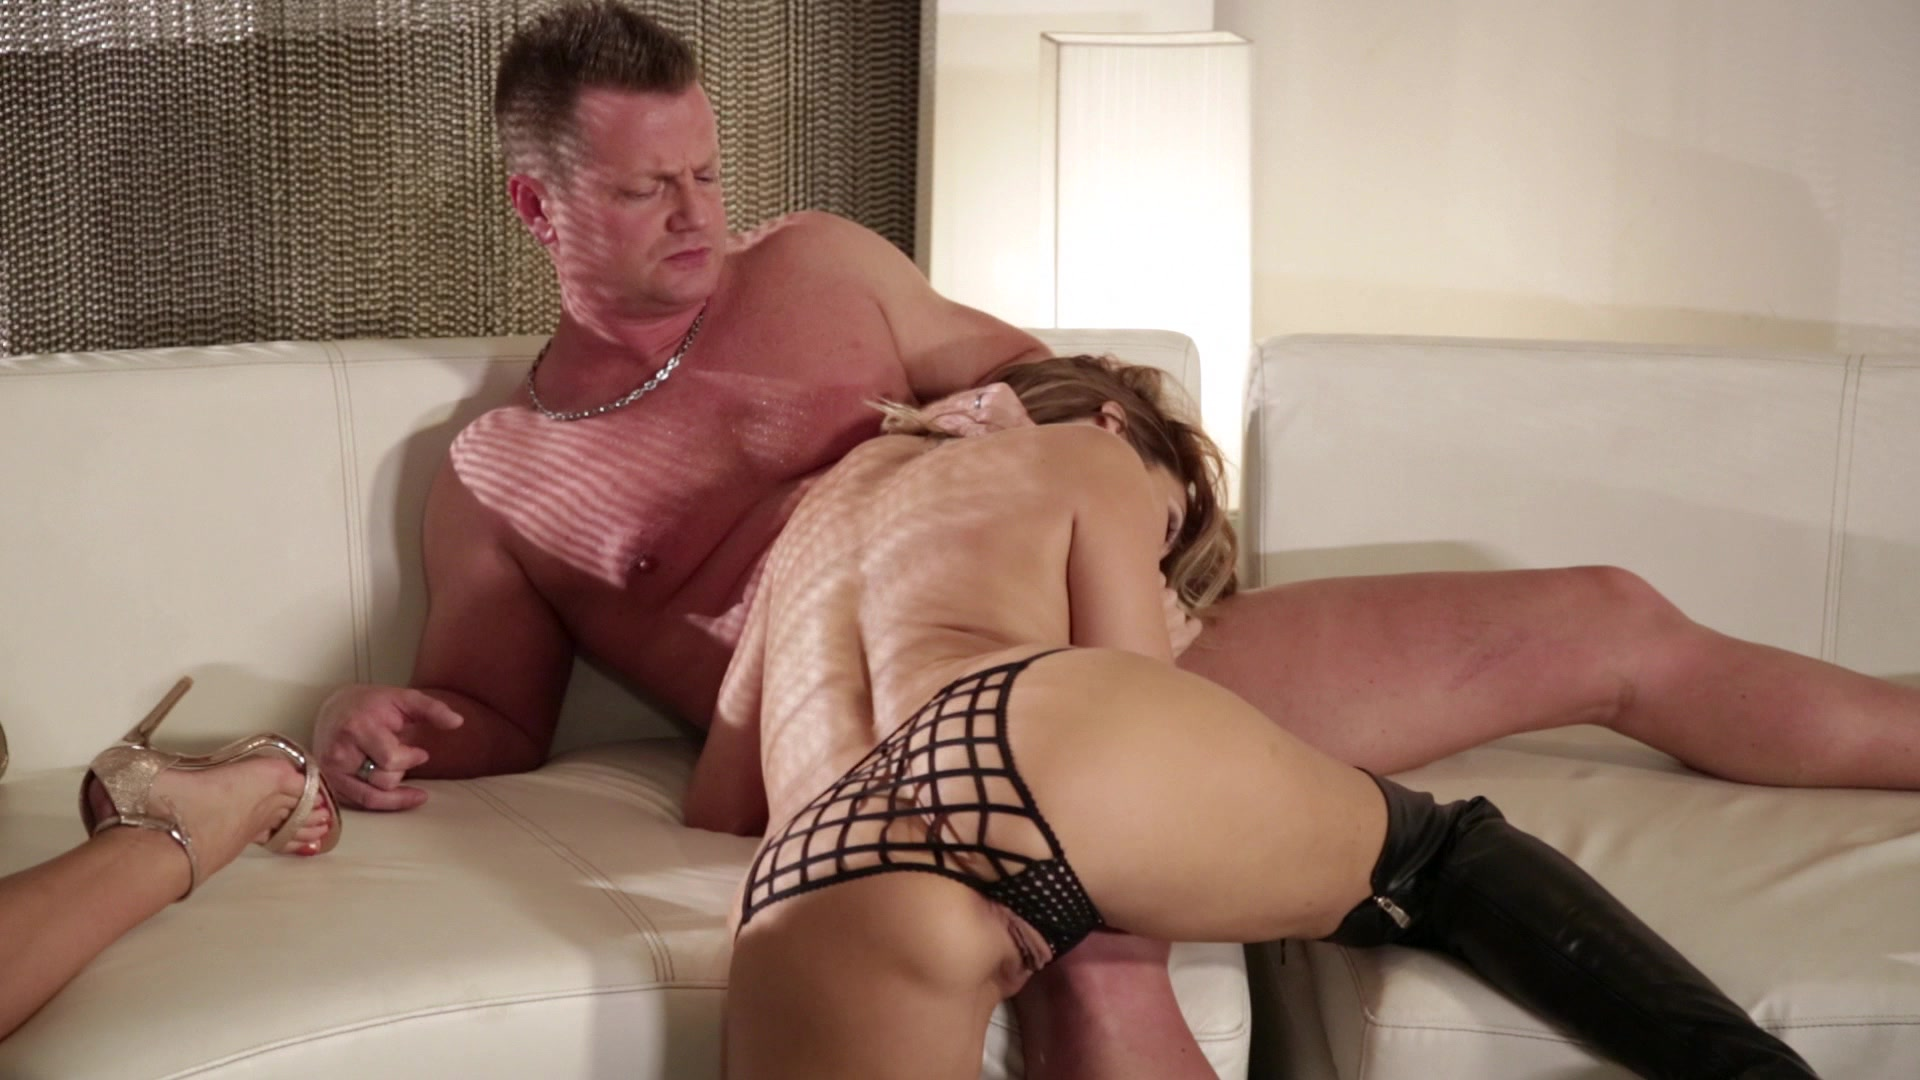 Scene with Jessica Drake, Morgan Lee and Honey Gold - image 12 out of 20